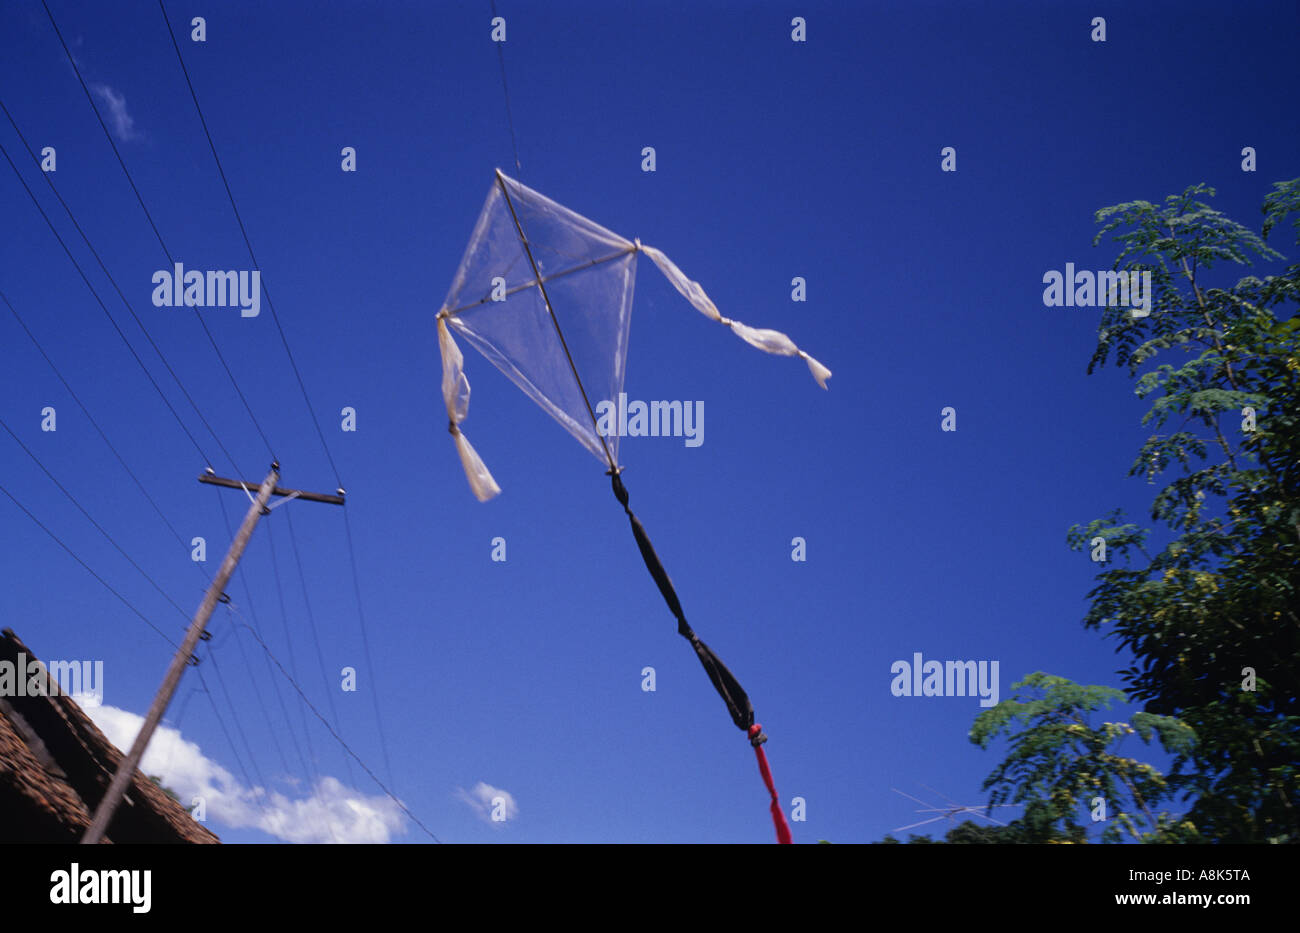 A homemade kite flies above a village in Nicaragua.